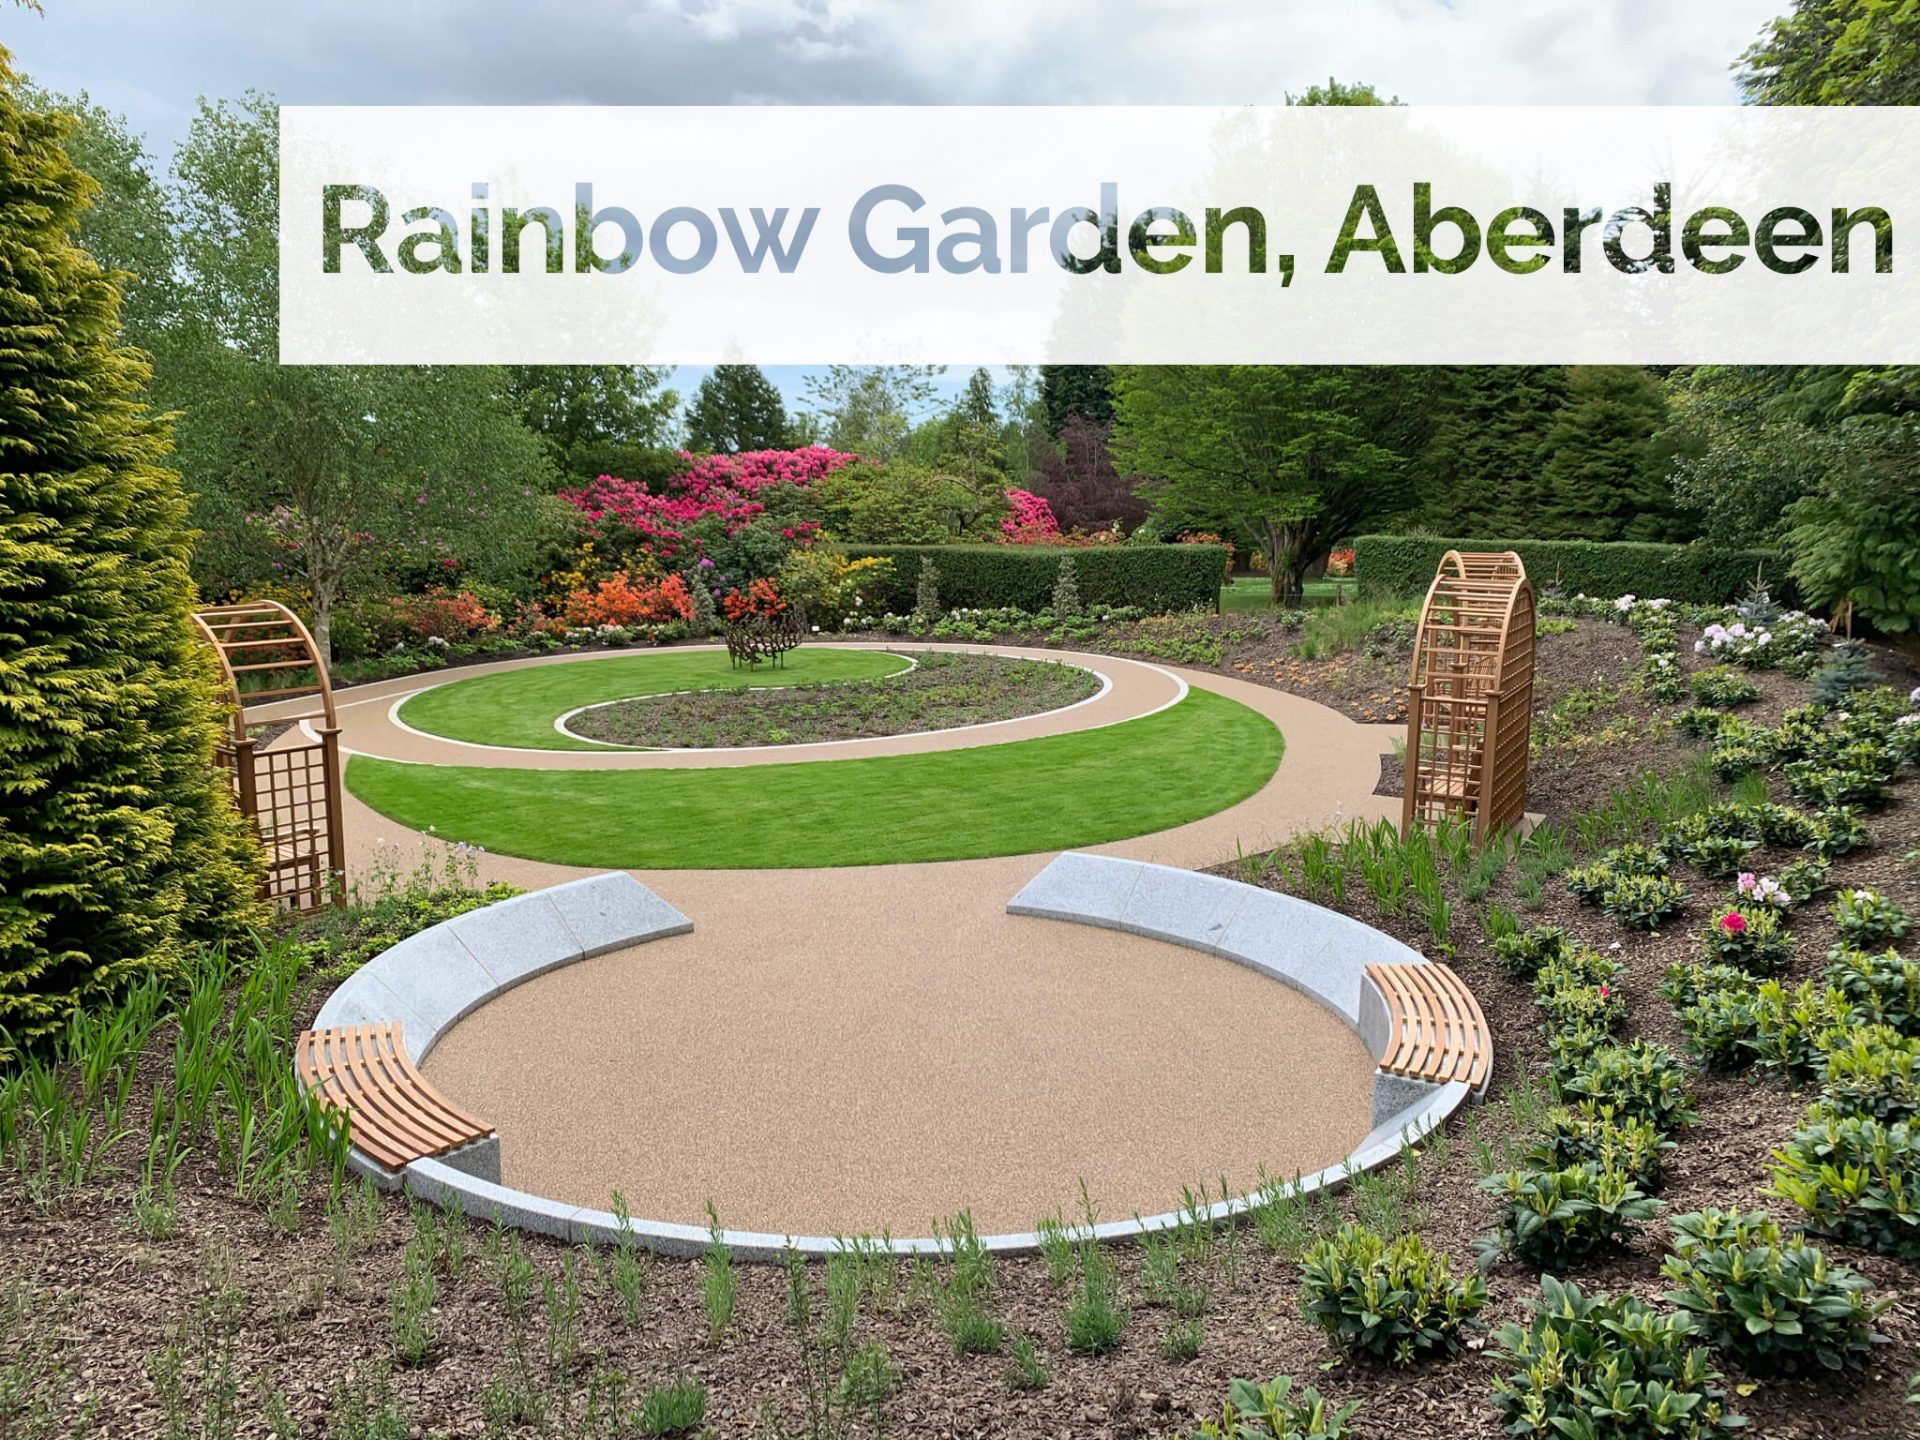 Plant supply to help Aberdeen Rainbow Garden bloom